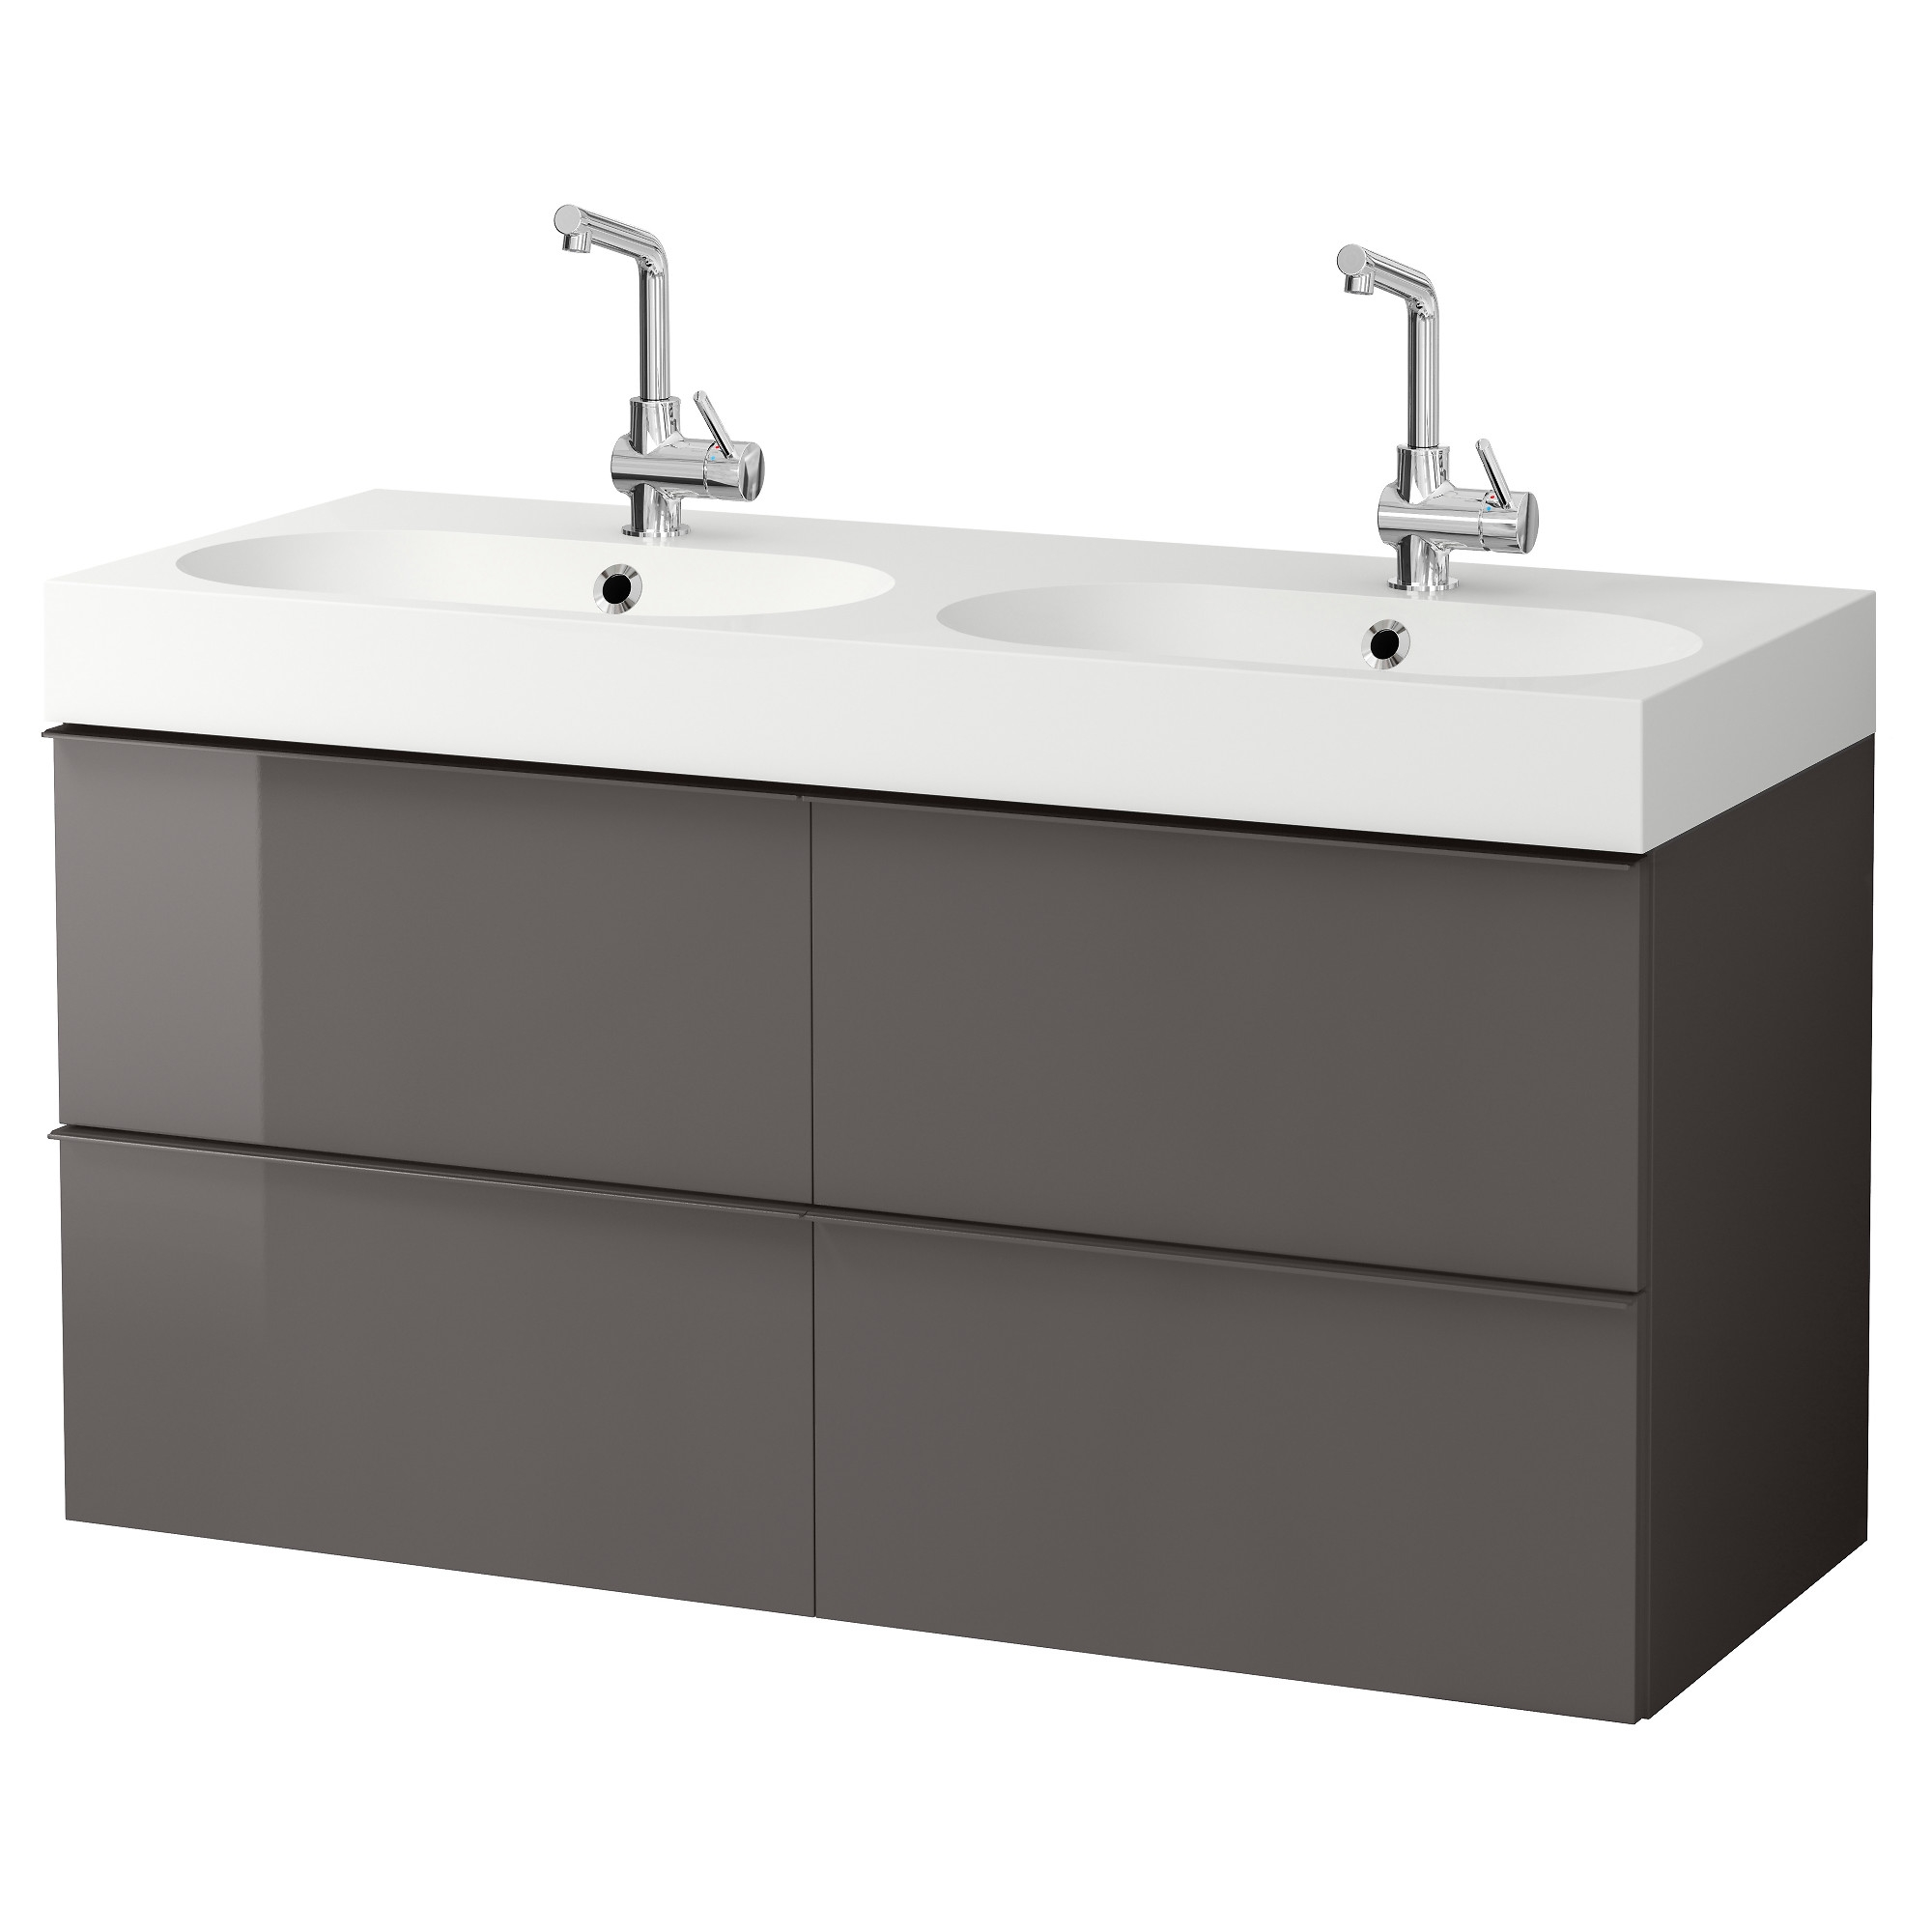 Cabinets For Bathroom Sinks